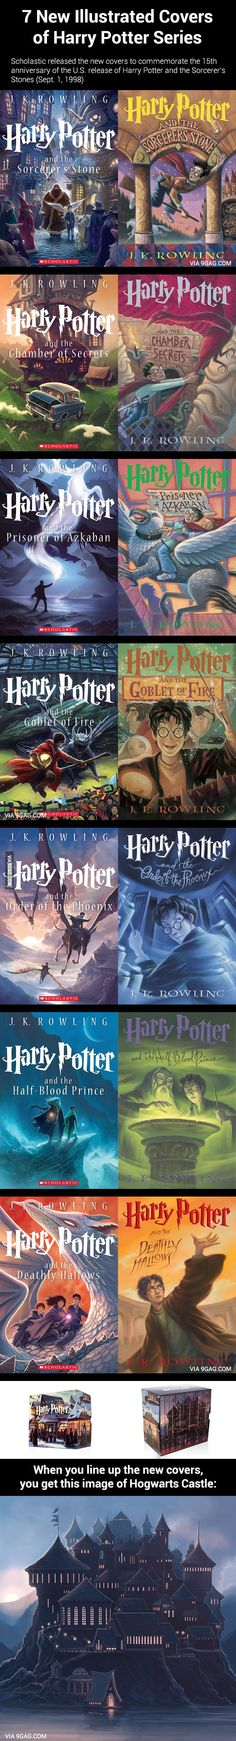 Harry Potter! I mean who hasn't heard of Harry Potter. I would say that the 7th book was my favorite. Snape would have to be my hero, and I may be in love with Ginny Weasley (just saying....).